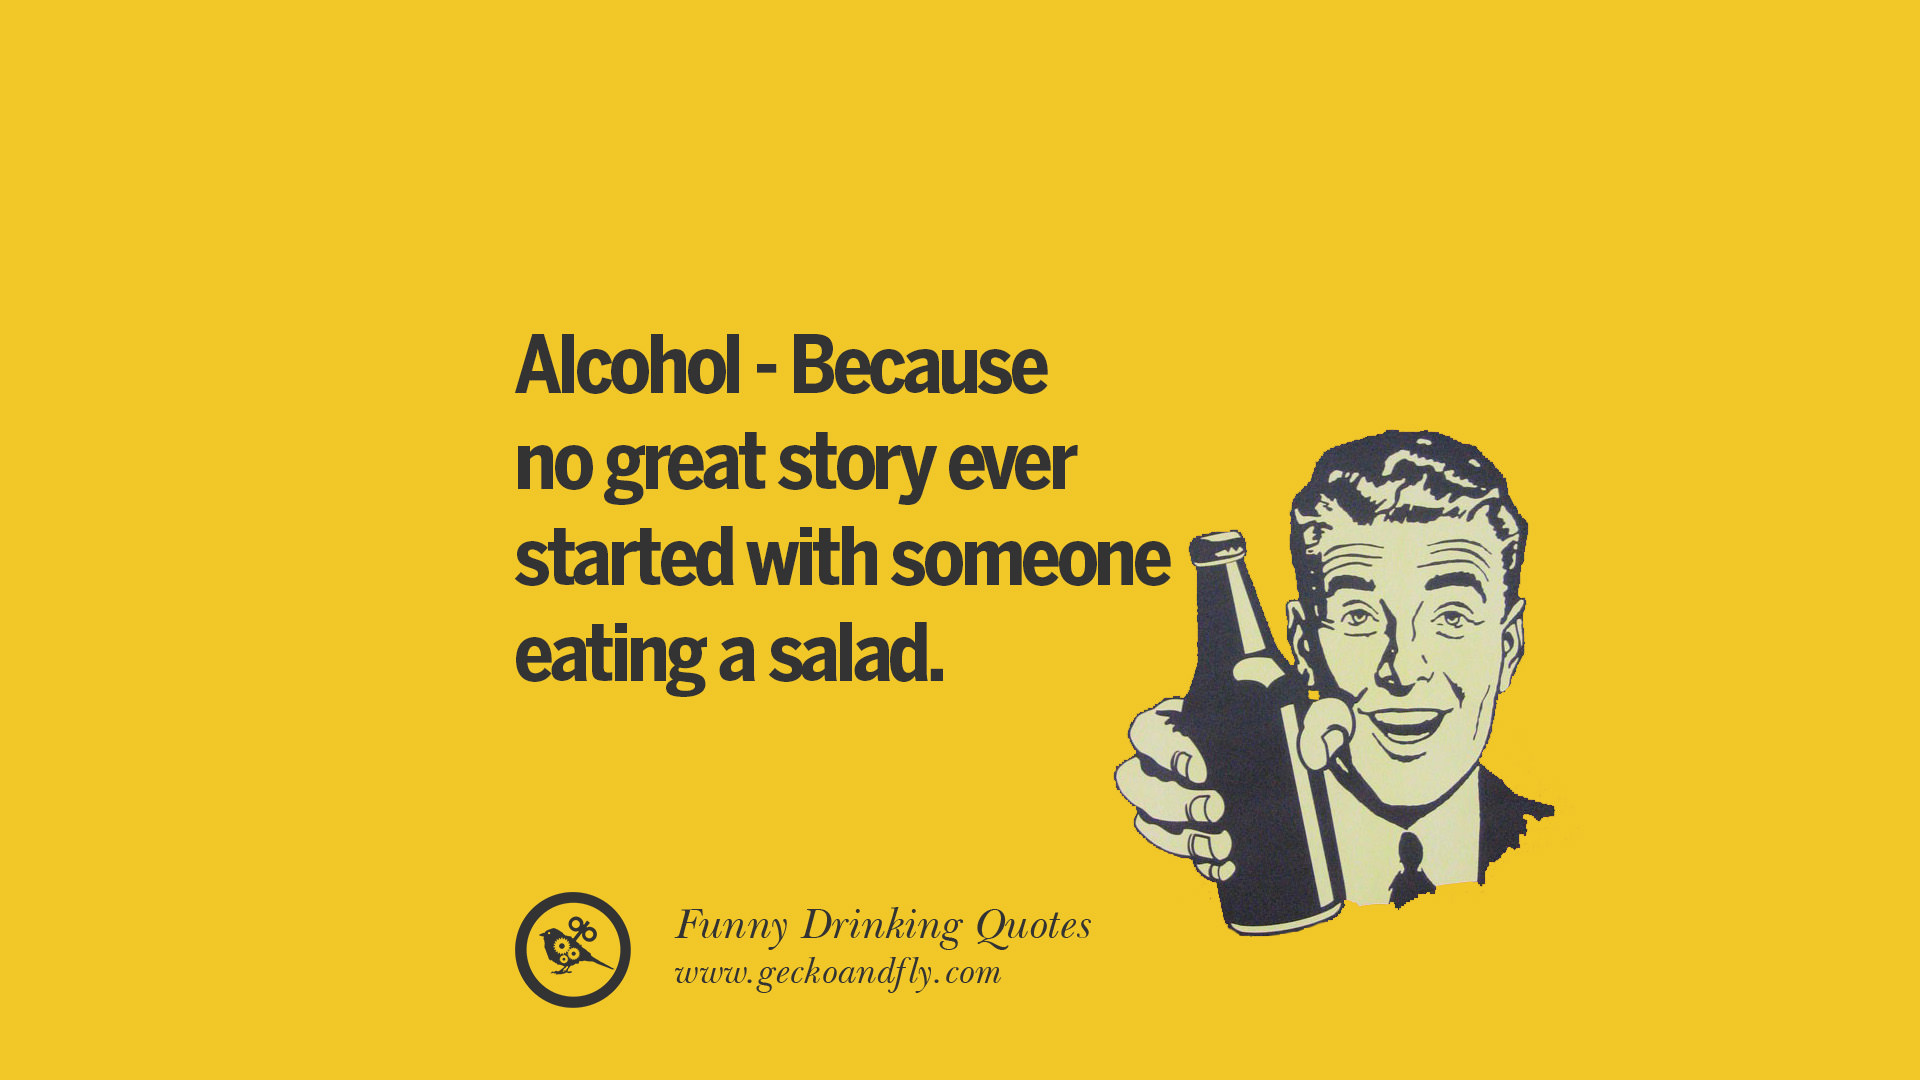 Funny Beer Drinking Quotes: 50 Funny Saying On Drinking Alcohol, Having Fun, And Partying